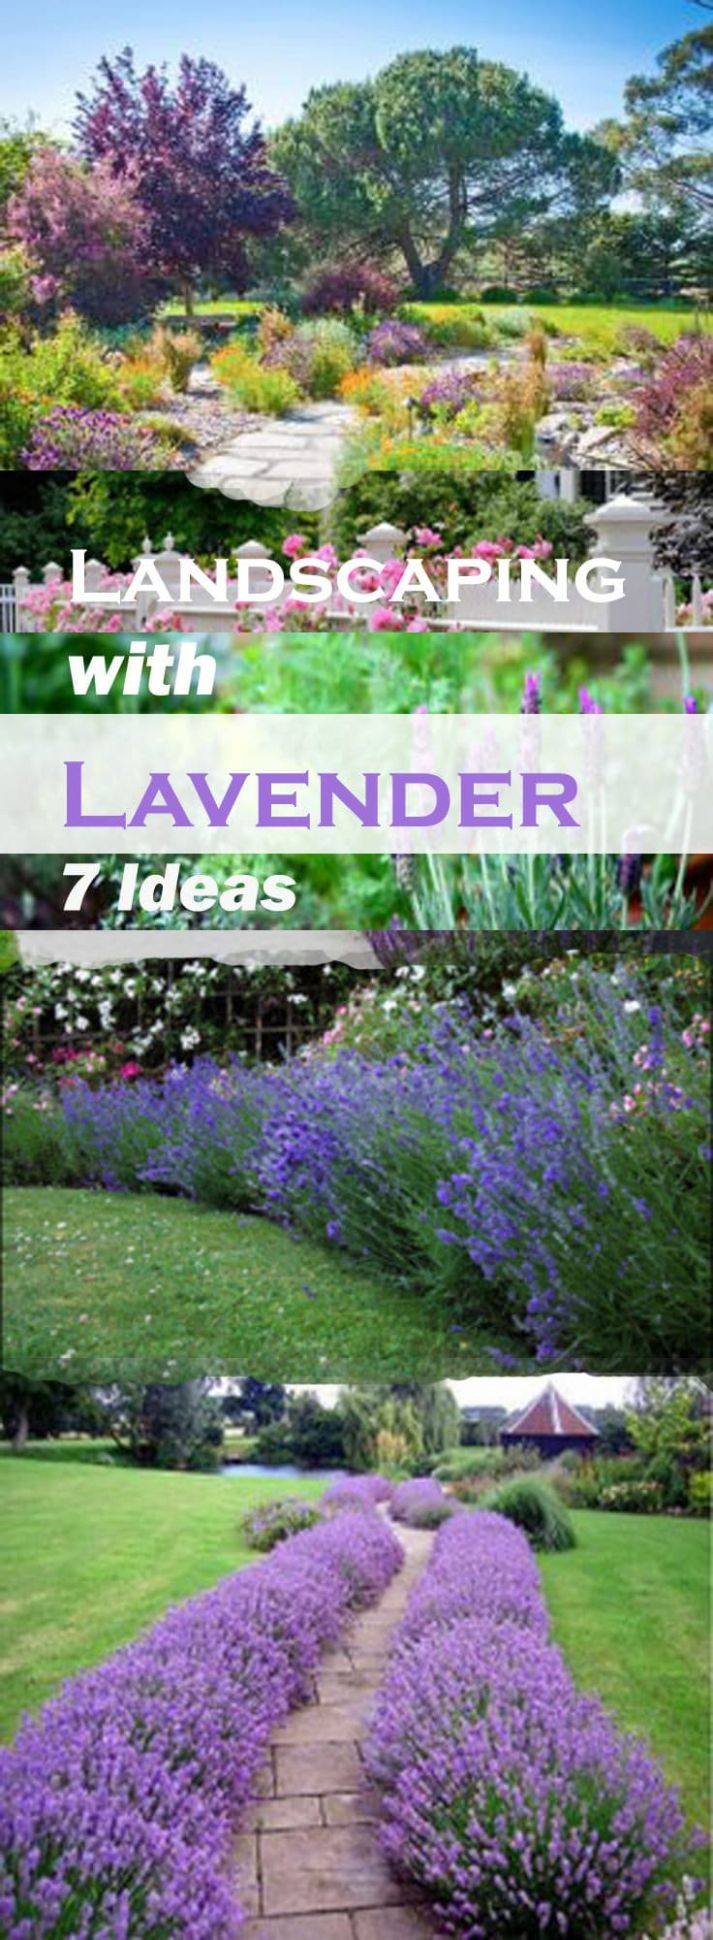 Landscaping with Lavender | 12 Garden Design Ideas - garden ideas lavender